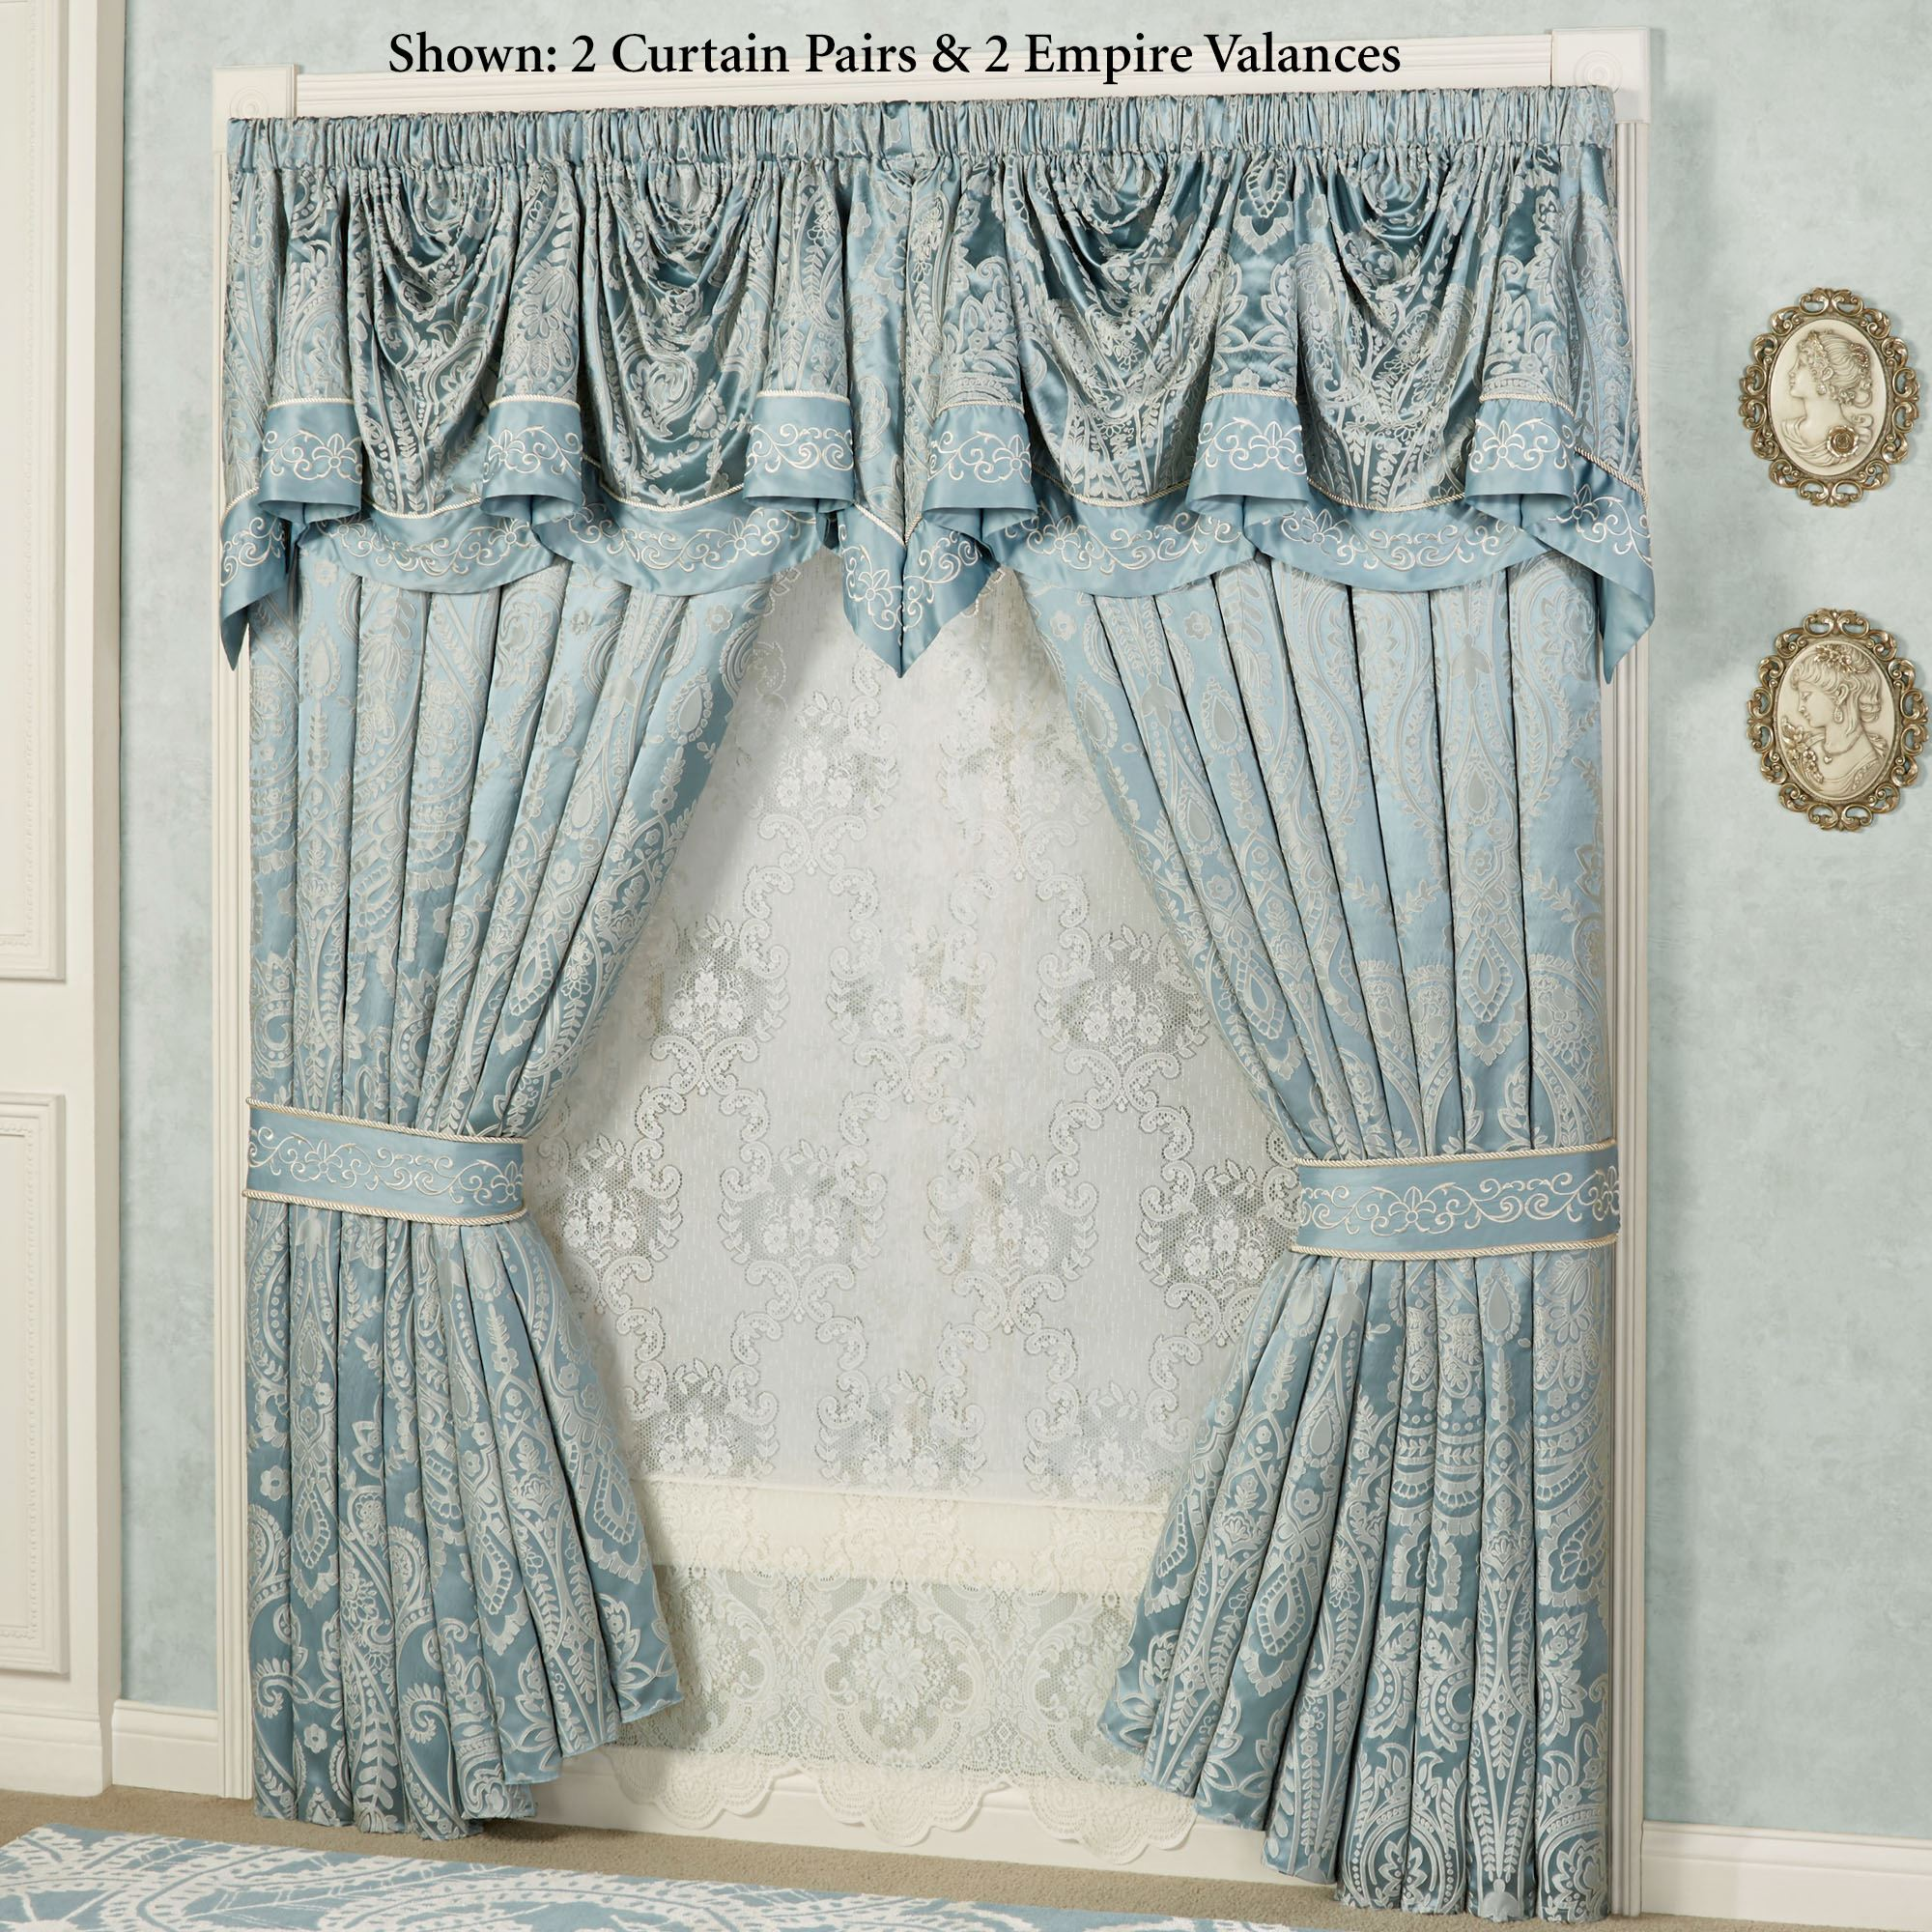 Regency Parisian Blue Empire Valance Window Treatment